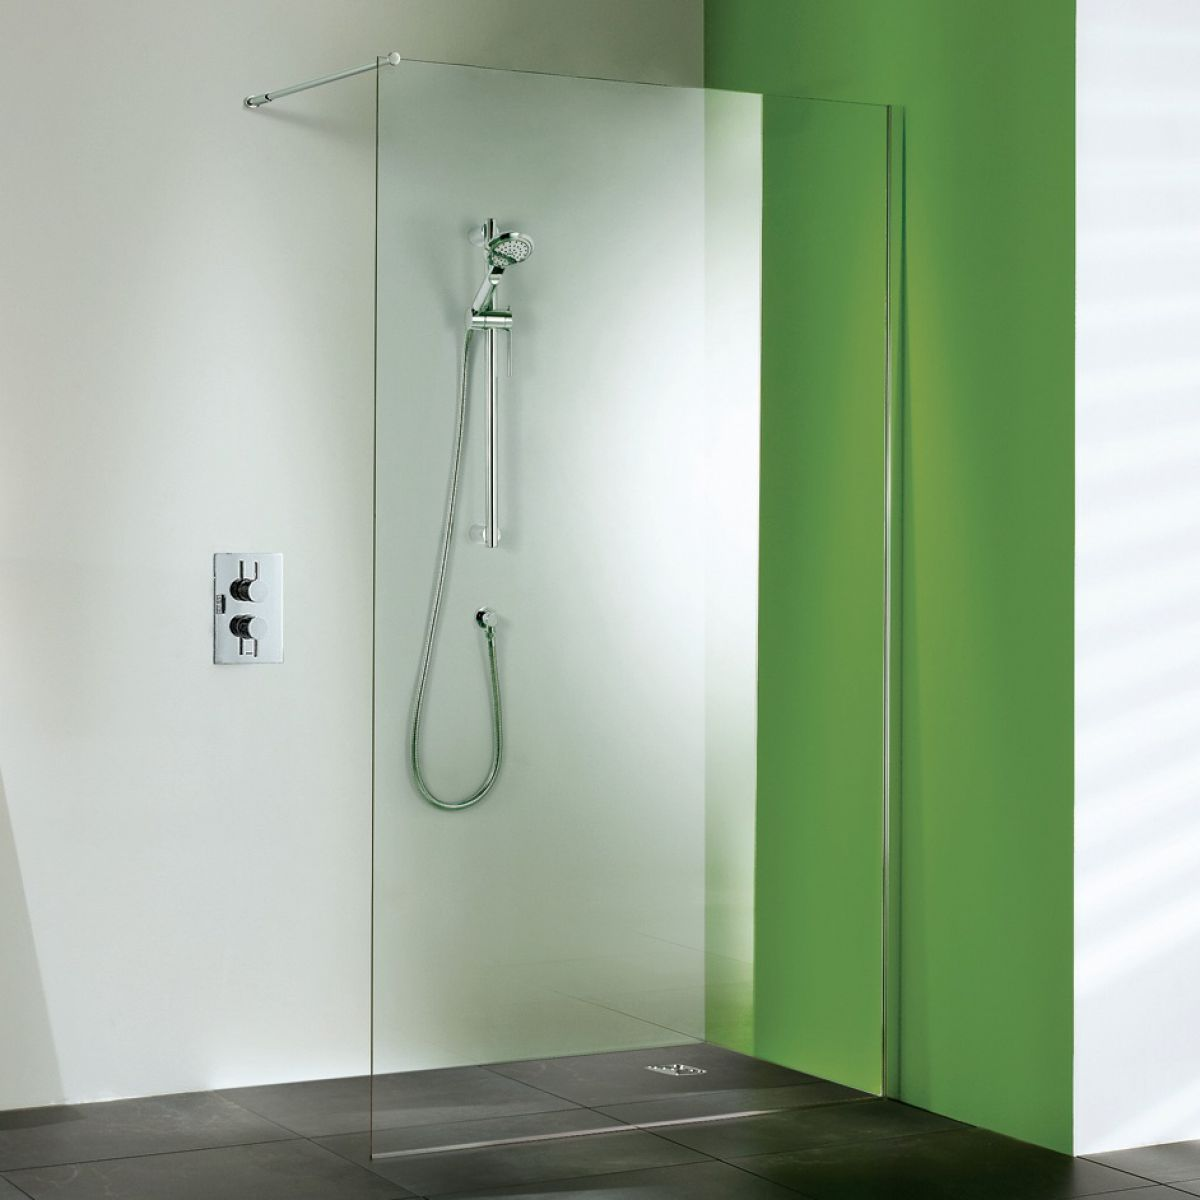 bathrooms ream kent wet showers in bathroom solutions room by steam walk shower